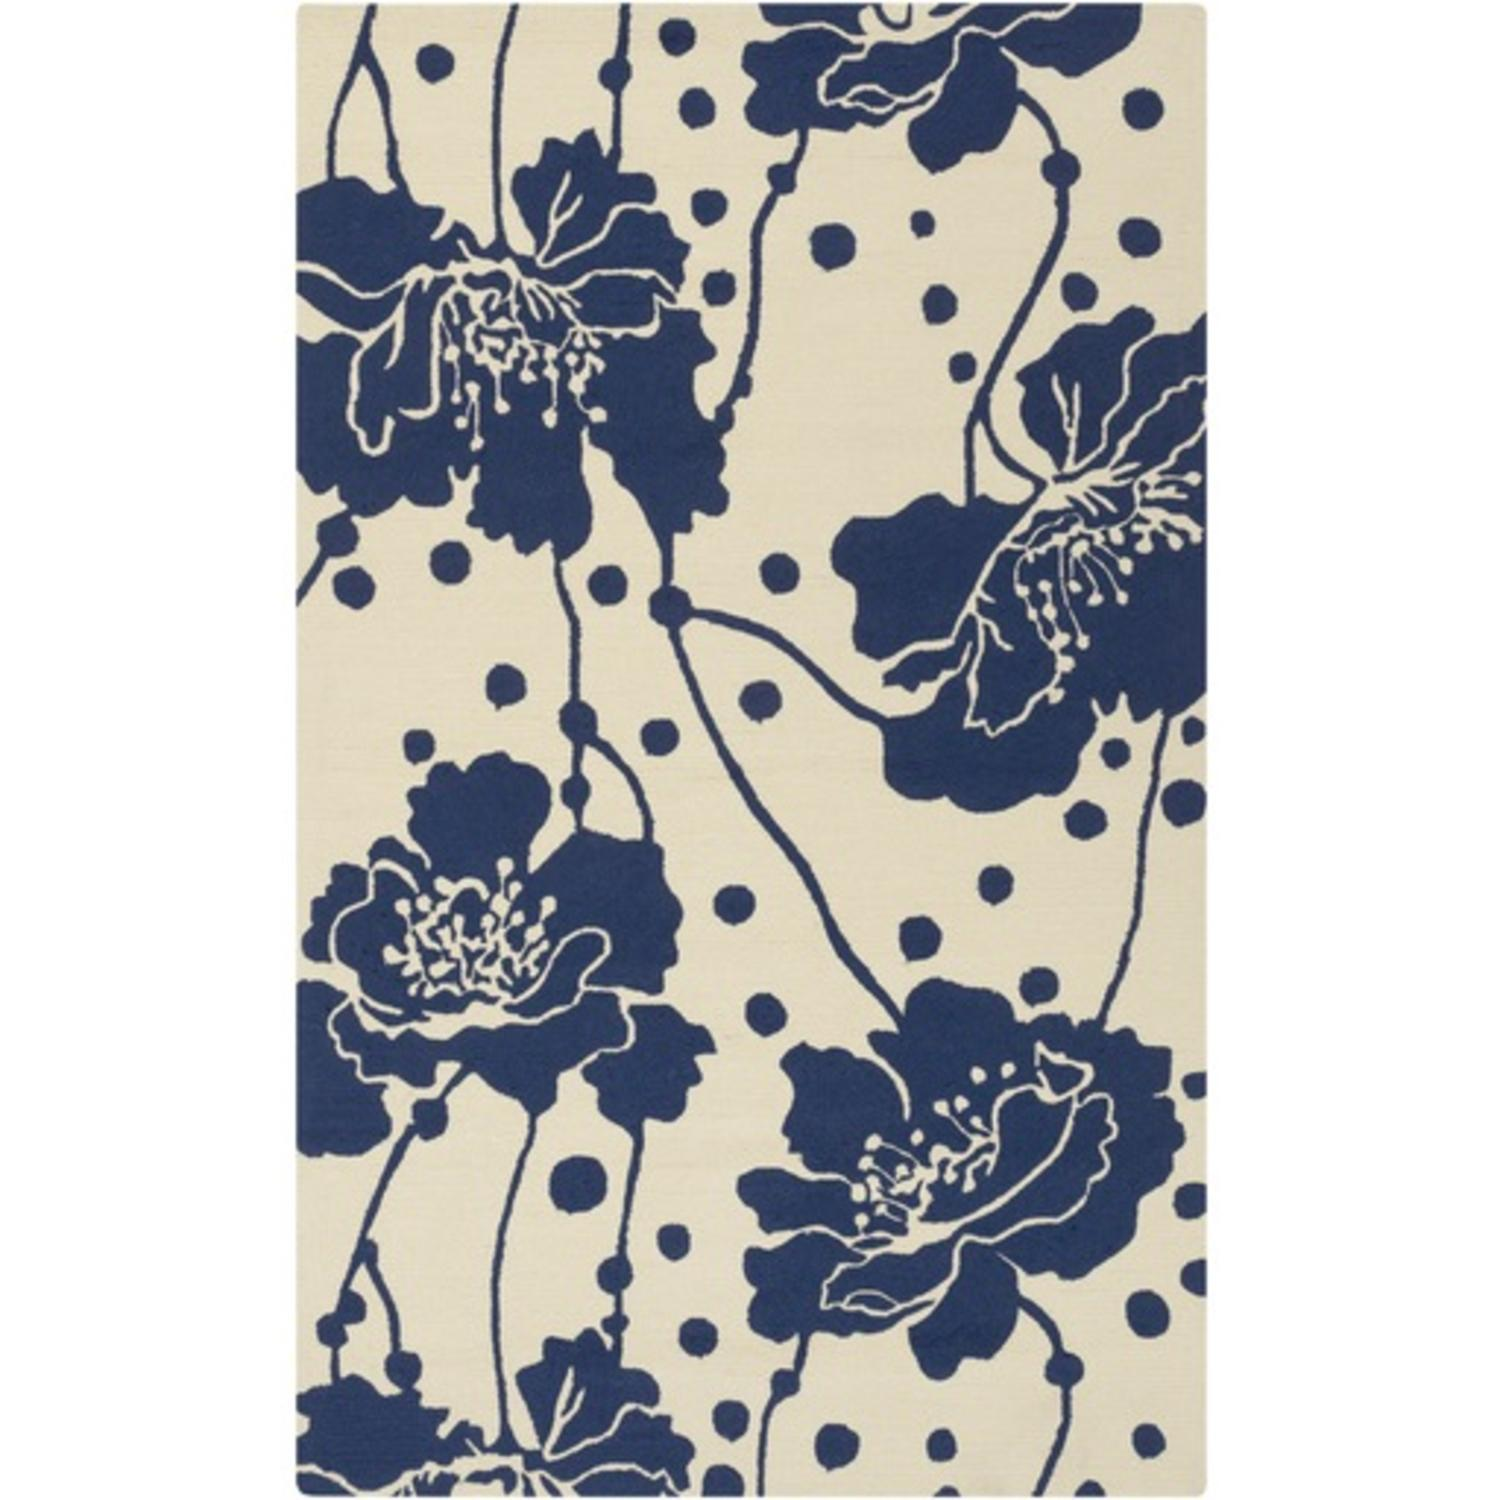 2' x 3' Hibiscus Hopes Midnight Blue and Eggshell Outdoor Safe Area Throw Rug